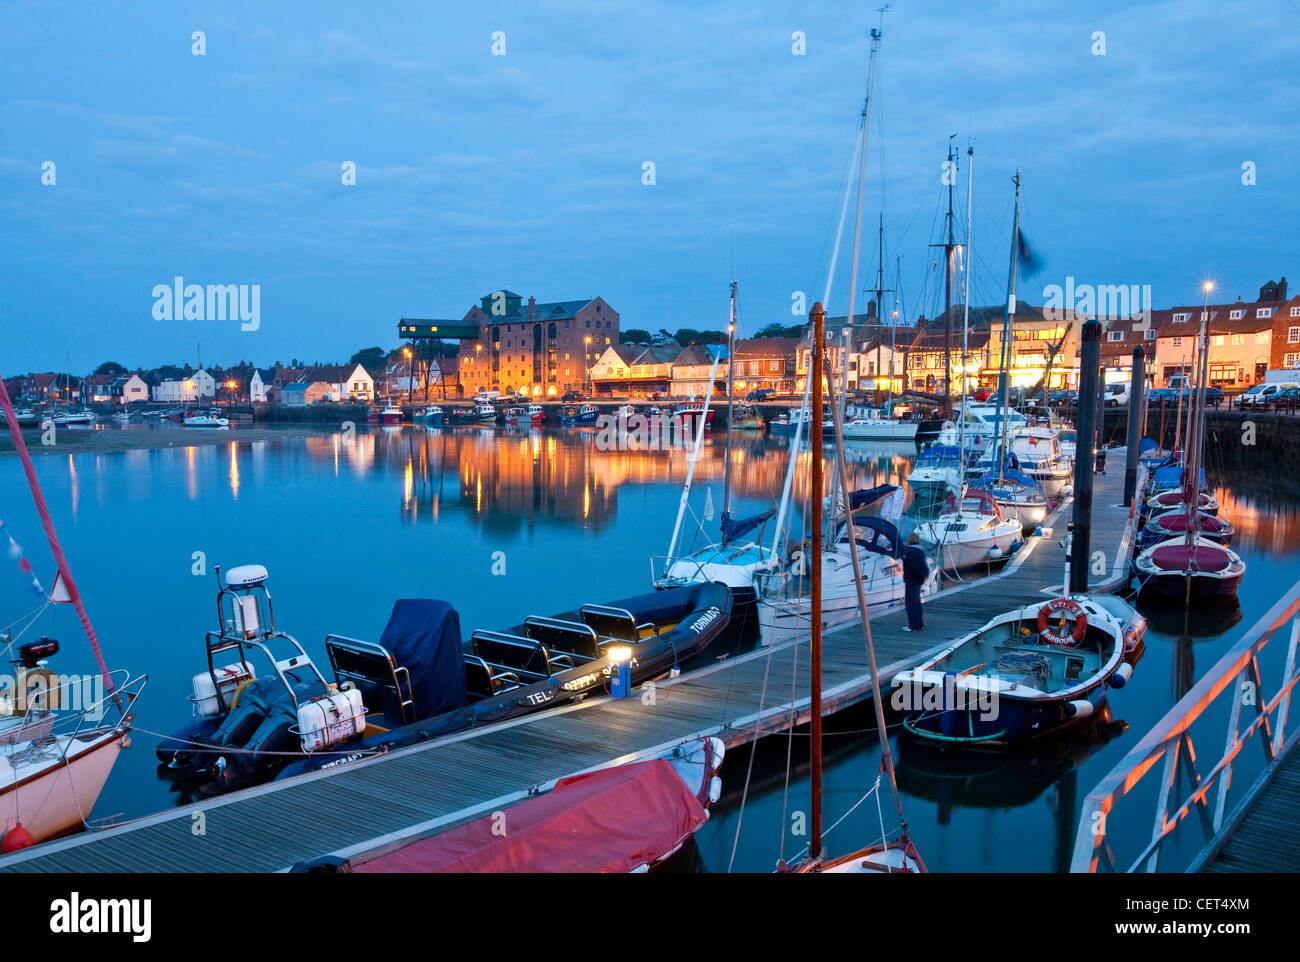 Boats moored alongside a jetty in the quay at Wells-next-the-Sea on the North Norfolk coast at night. - Stock Image